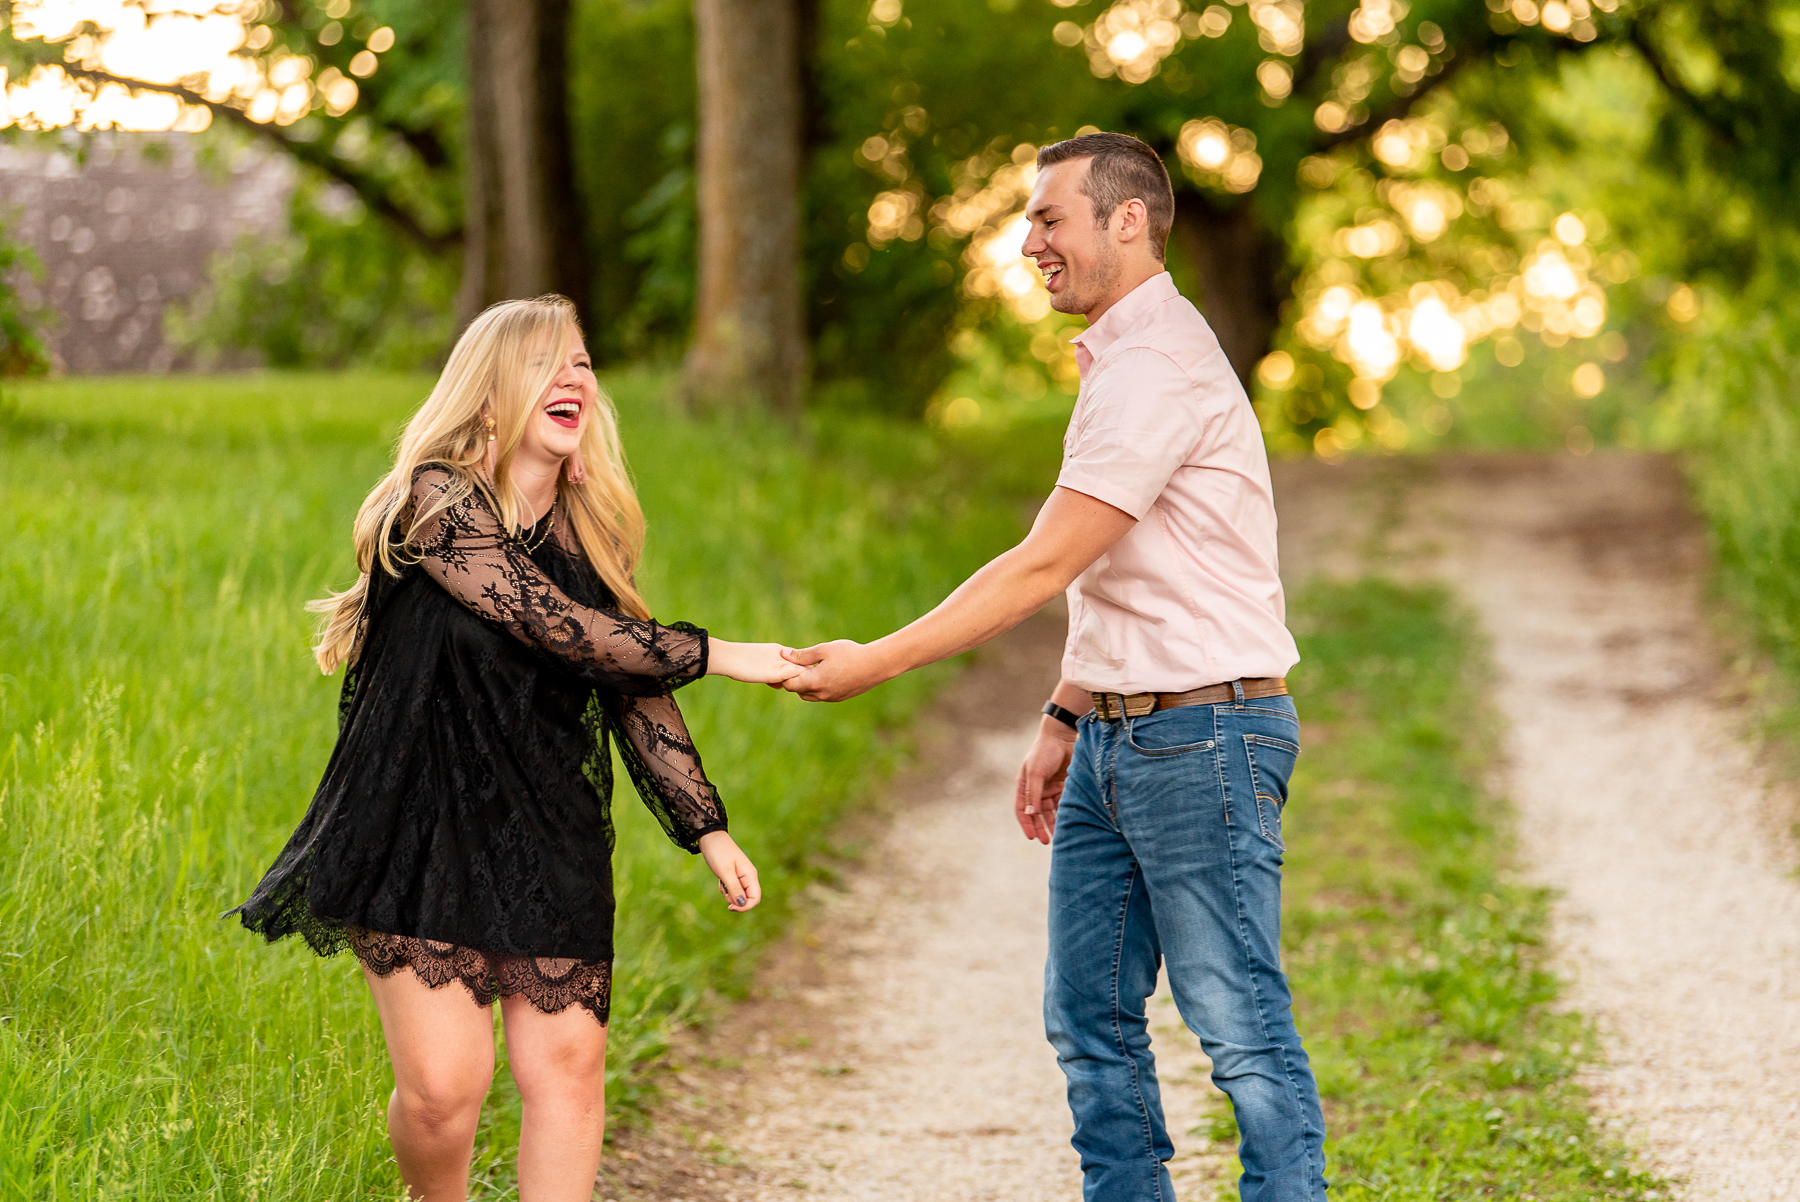 ENGAGEMENTS - The Beginning of Your Story, Together